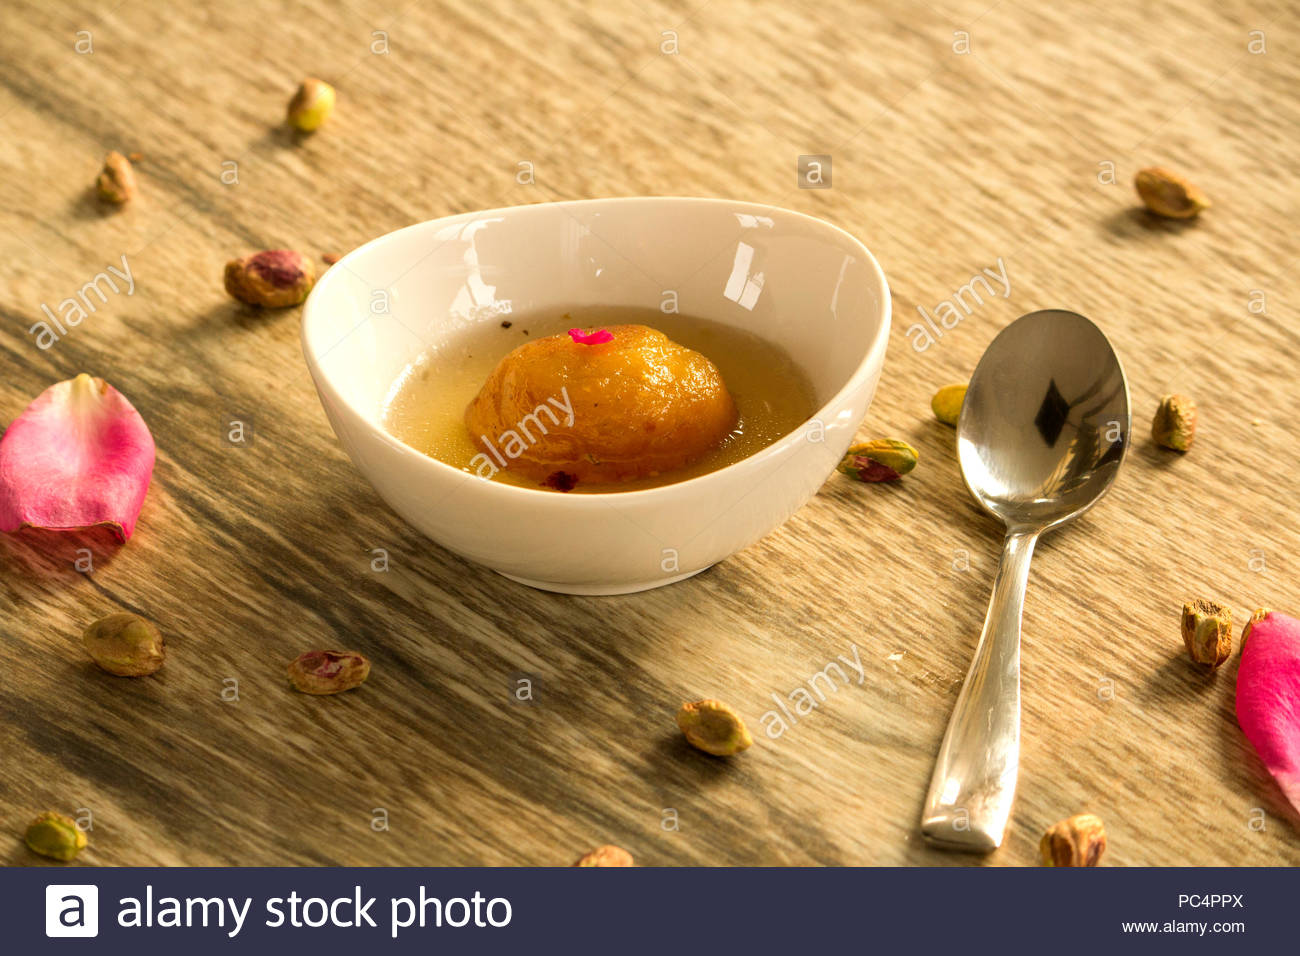 Soft, spongy, delicious mawa or khawa gulab jamun is one of the traditional sweet in India. - Stock Image